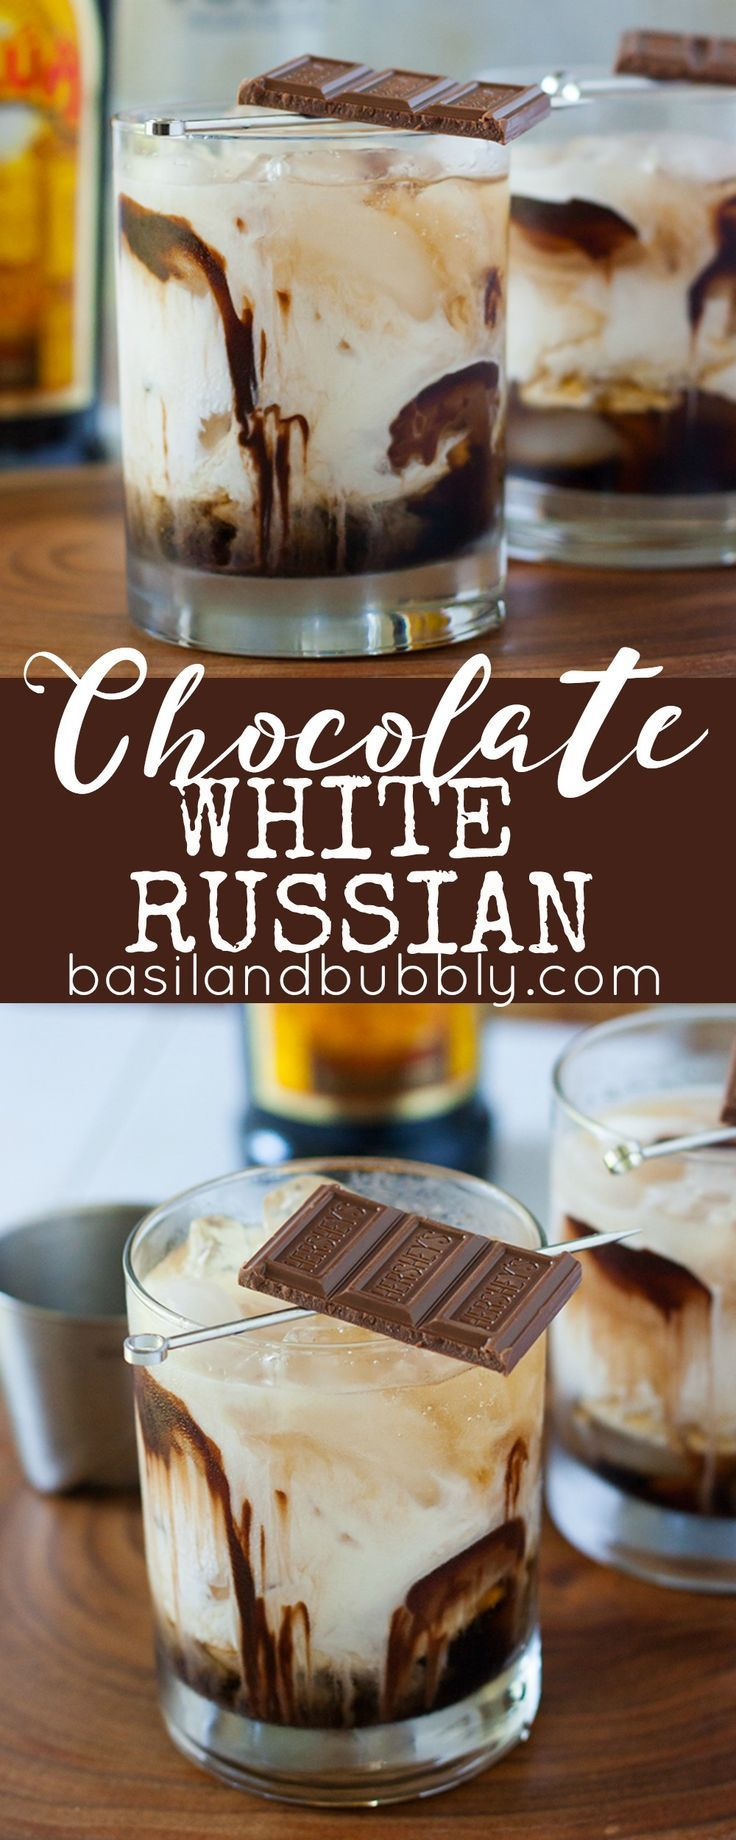 A dessert cocktail recipe everyone will love: Chocolate White Russians. Made with Kahlua, Vodka, Cream, Chocolate Syrup, and garnished with a chocolate bar. More